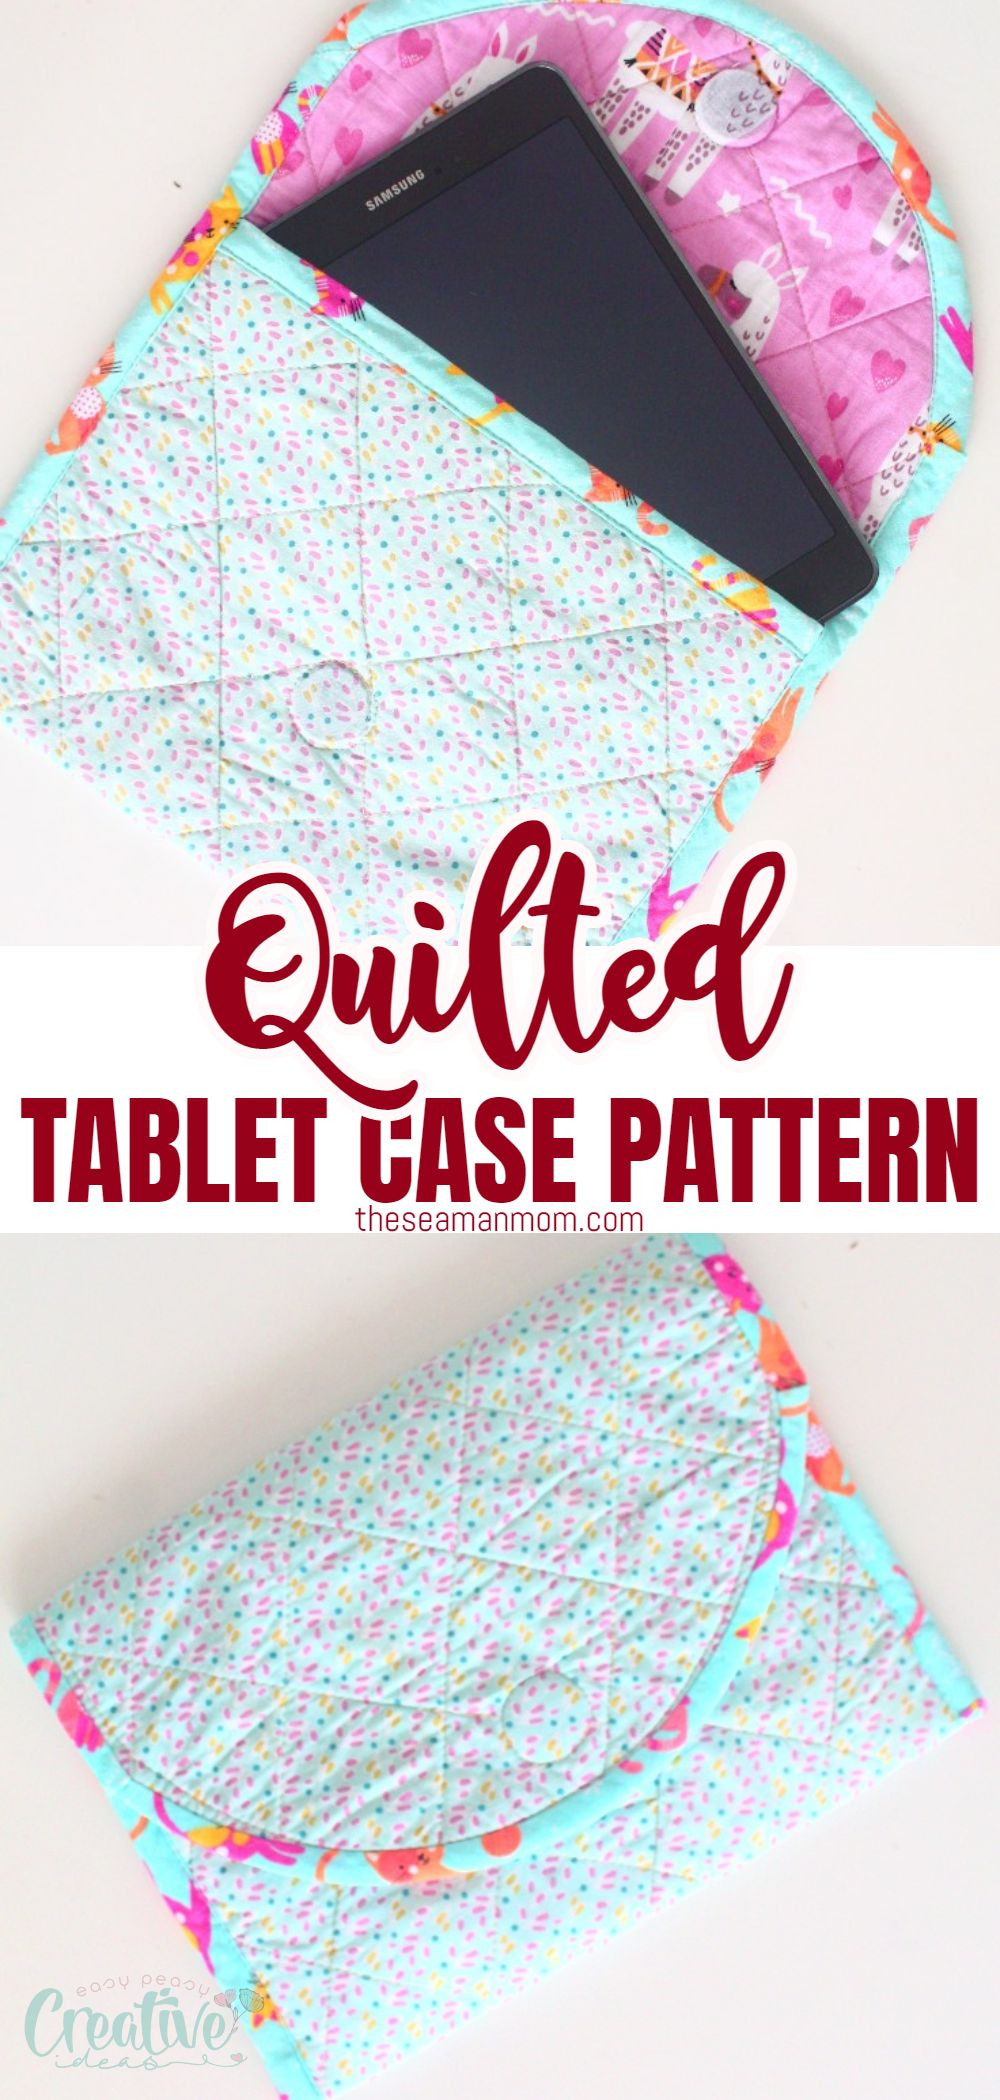 Tablets are a thing these days, when we need to keep in touch with our friends, family or jobs. But they are sensitive, so they need protection. While there are many ways of making your own DIY tablet case, today I'm going to show you how to make a tablet cover using simple quilting. via @petroneagu